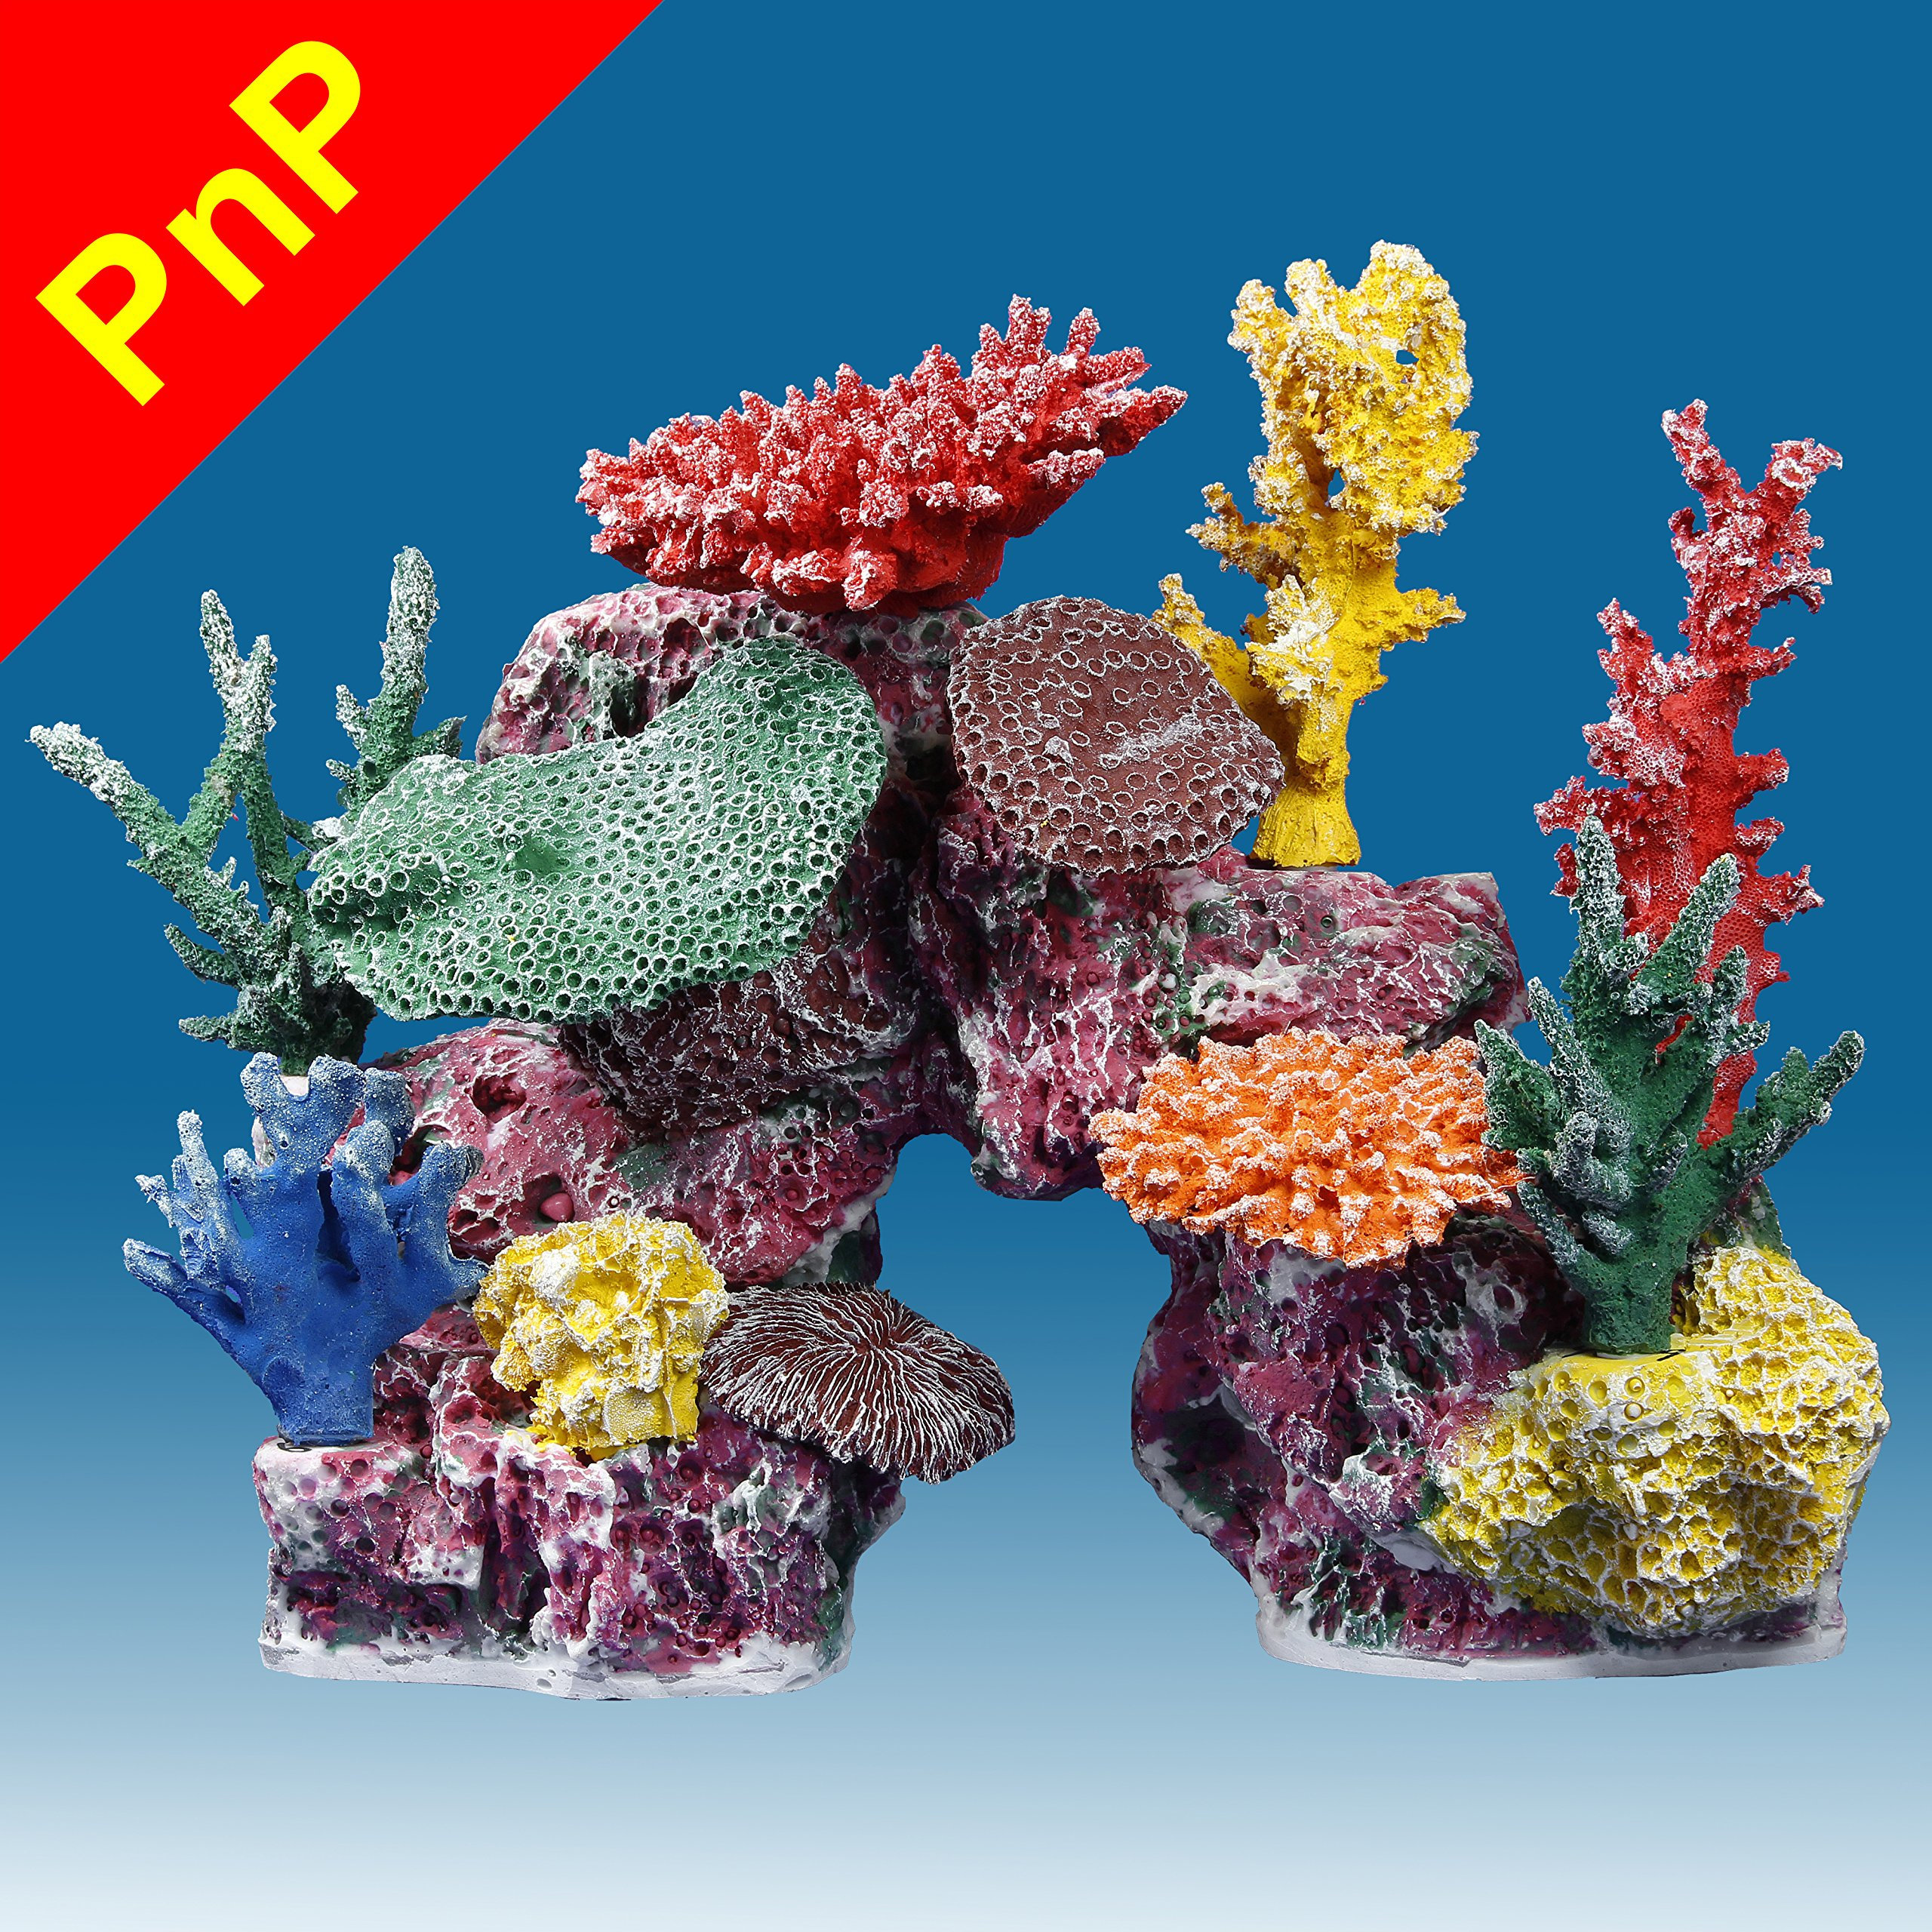 Instant Reef DM048PNP Large Artificial Coral Inserts Decor, Fake Coral Reef Decorations for Colorful Freshwater Fish Aquariums, Marine and Saltwater Fish Tanks by Instant Reef